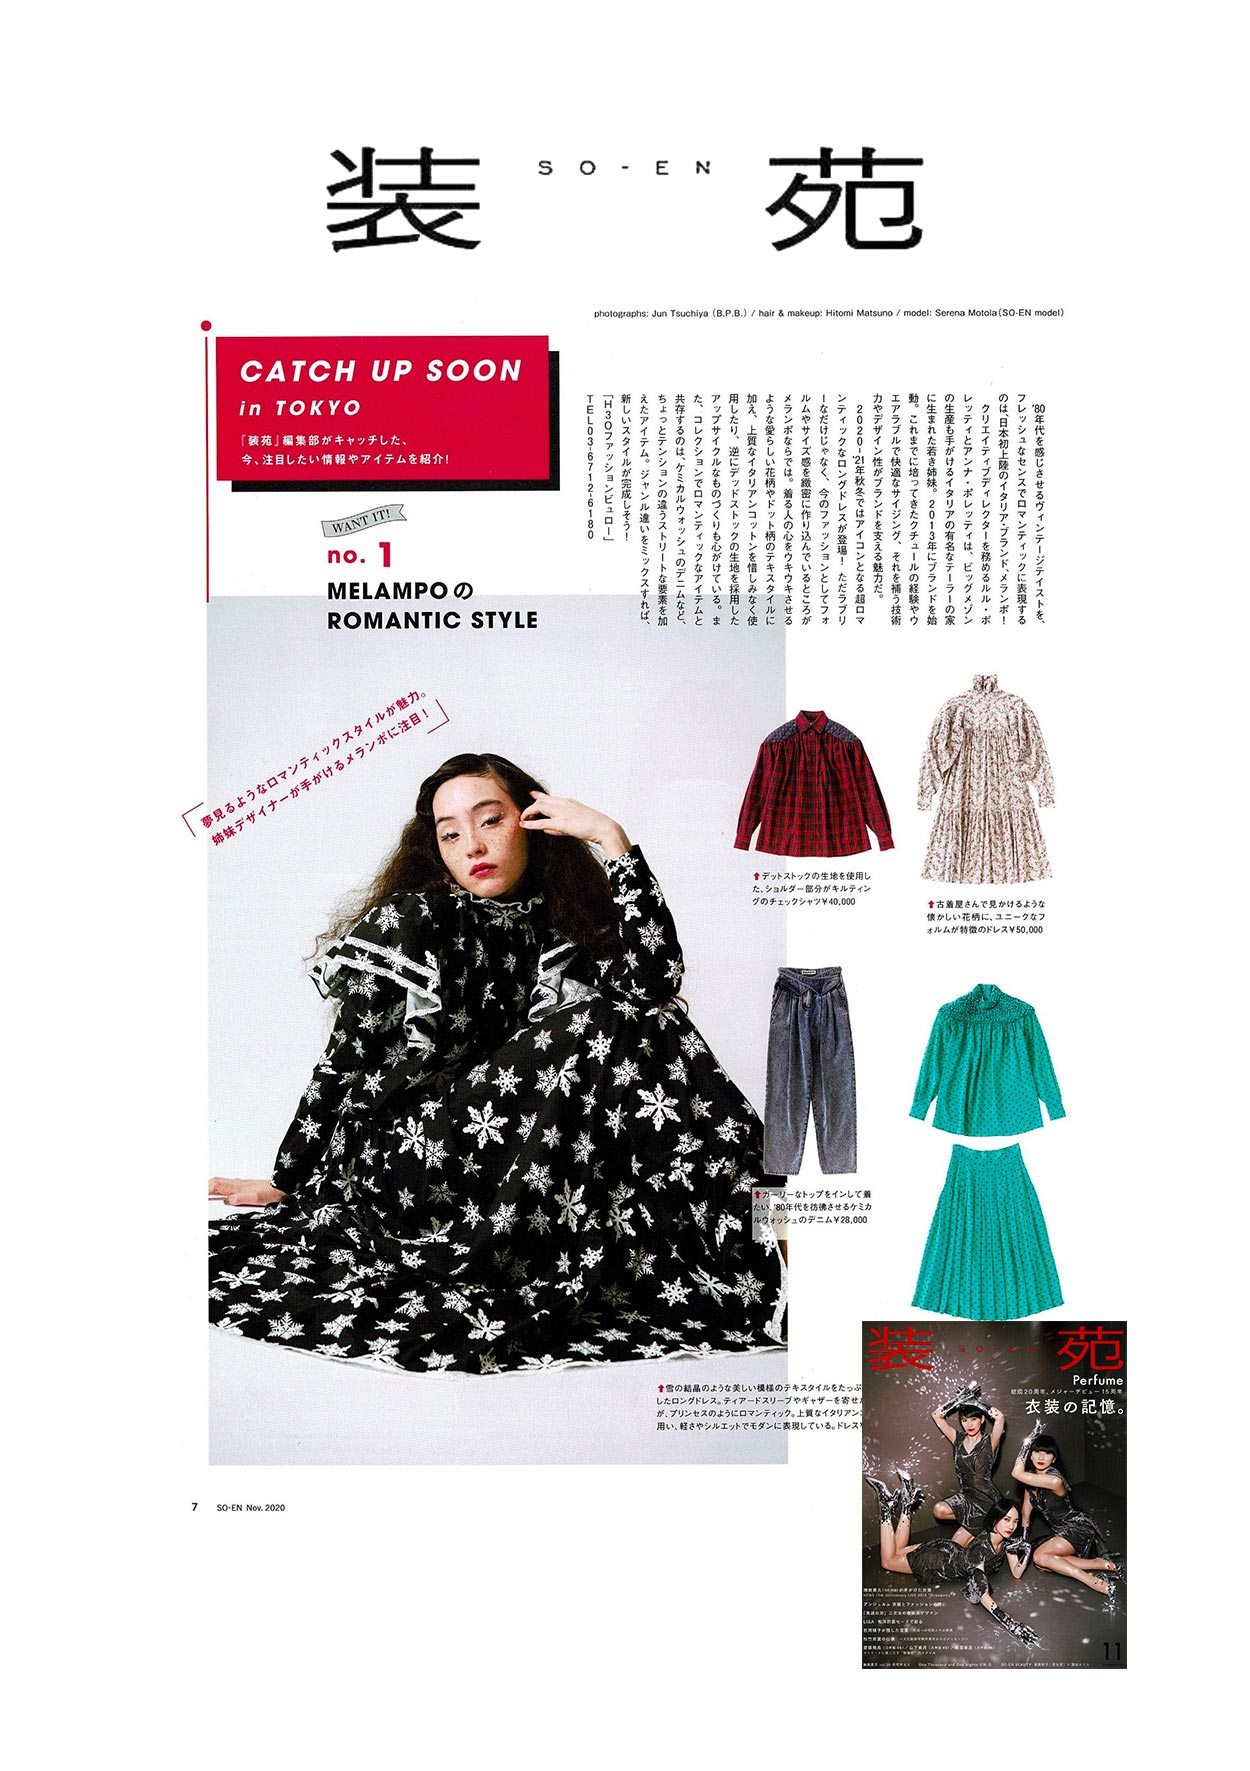 melampo press onto-en Japan magazine